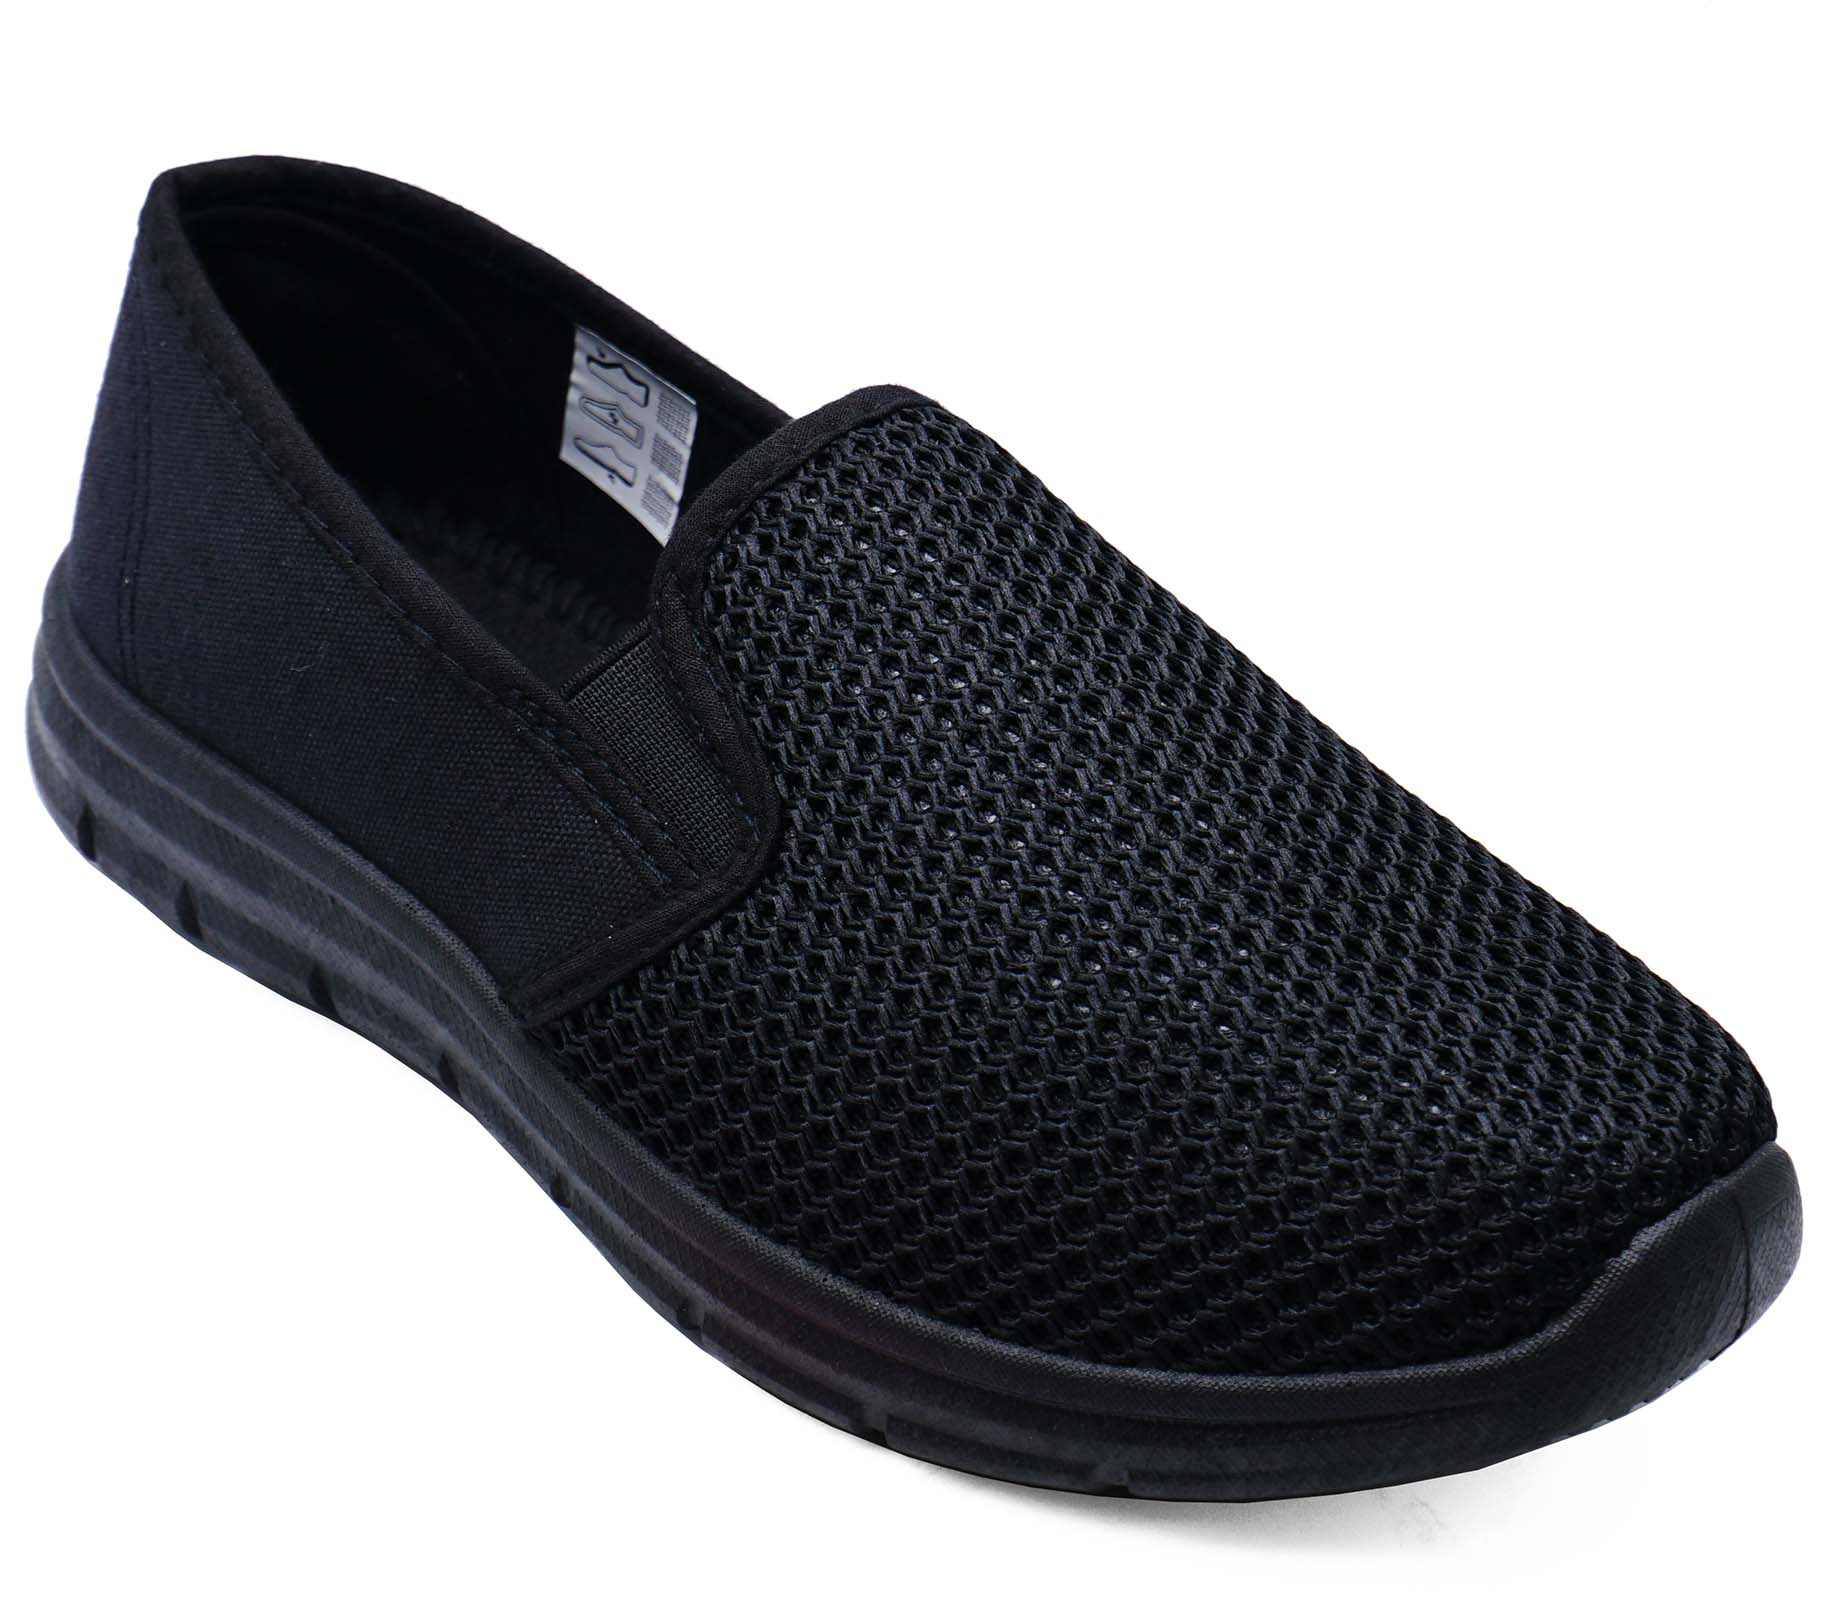 LADIES-BLACK-SLIP-ON-COMFY-MEMORY-FOAM-TRAINER-PLIMSOLLS-CASUAL-PUMPS-SHOES-3-9 thumbnail 7